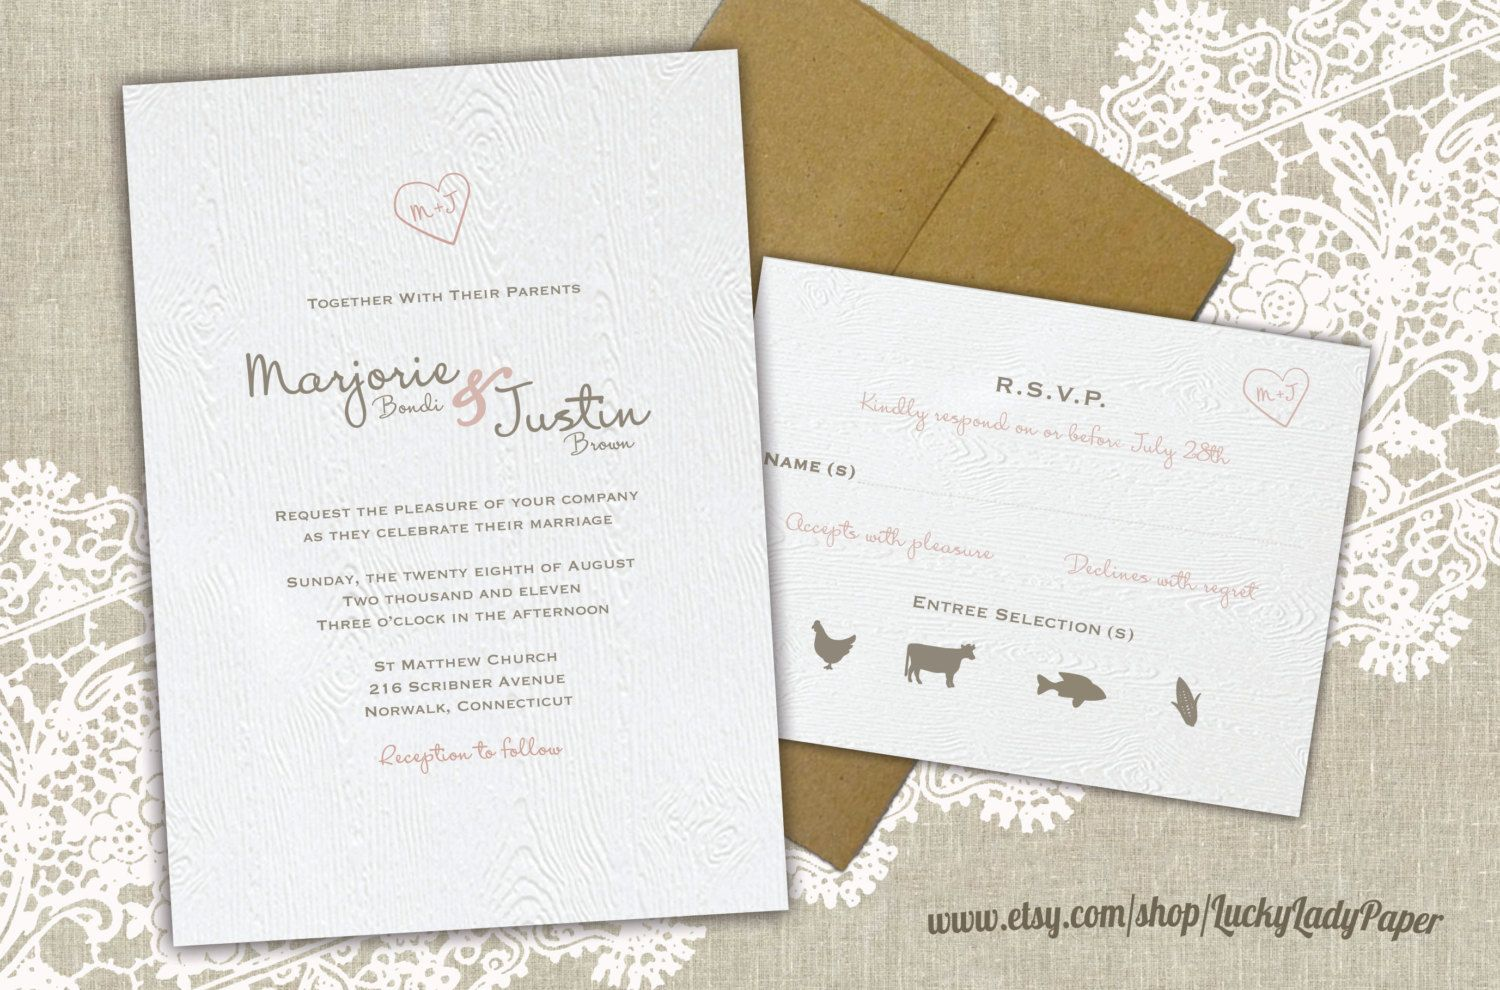 wedding invitation wording vegetarian option%0A Carved Initials Heart and Faux Bois  Woodgrain pattern  Woodland Wedding  Invitation Set by Luckyladypaper